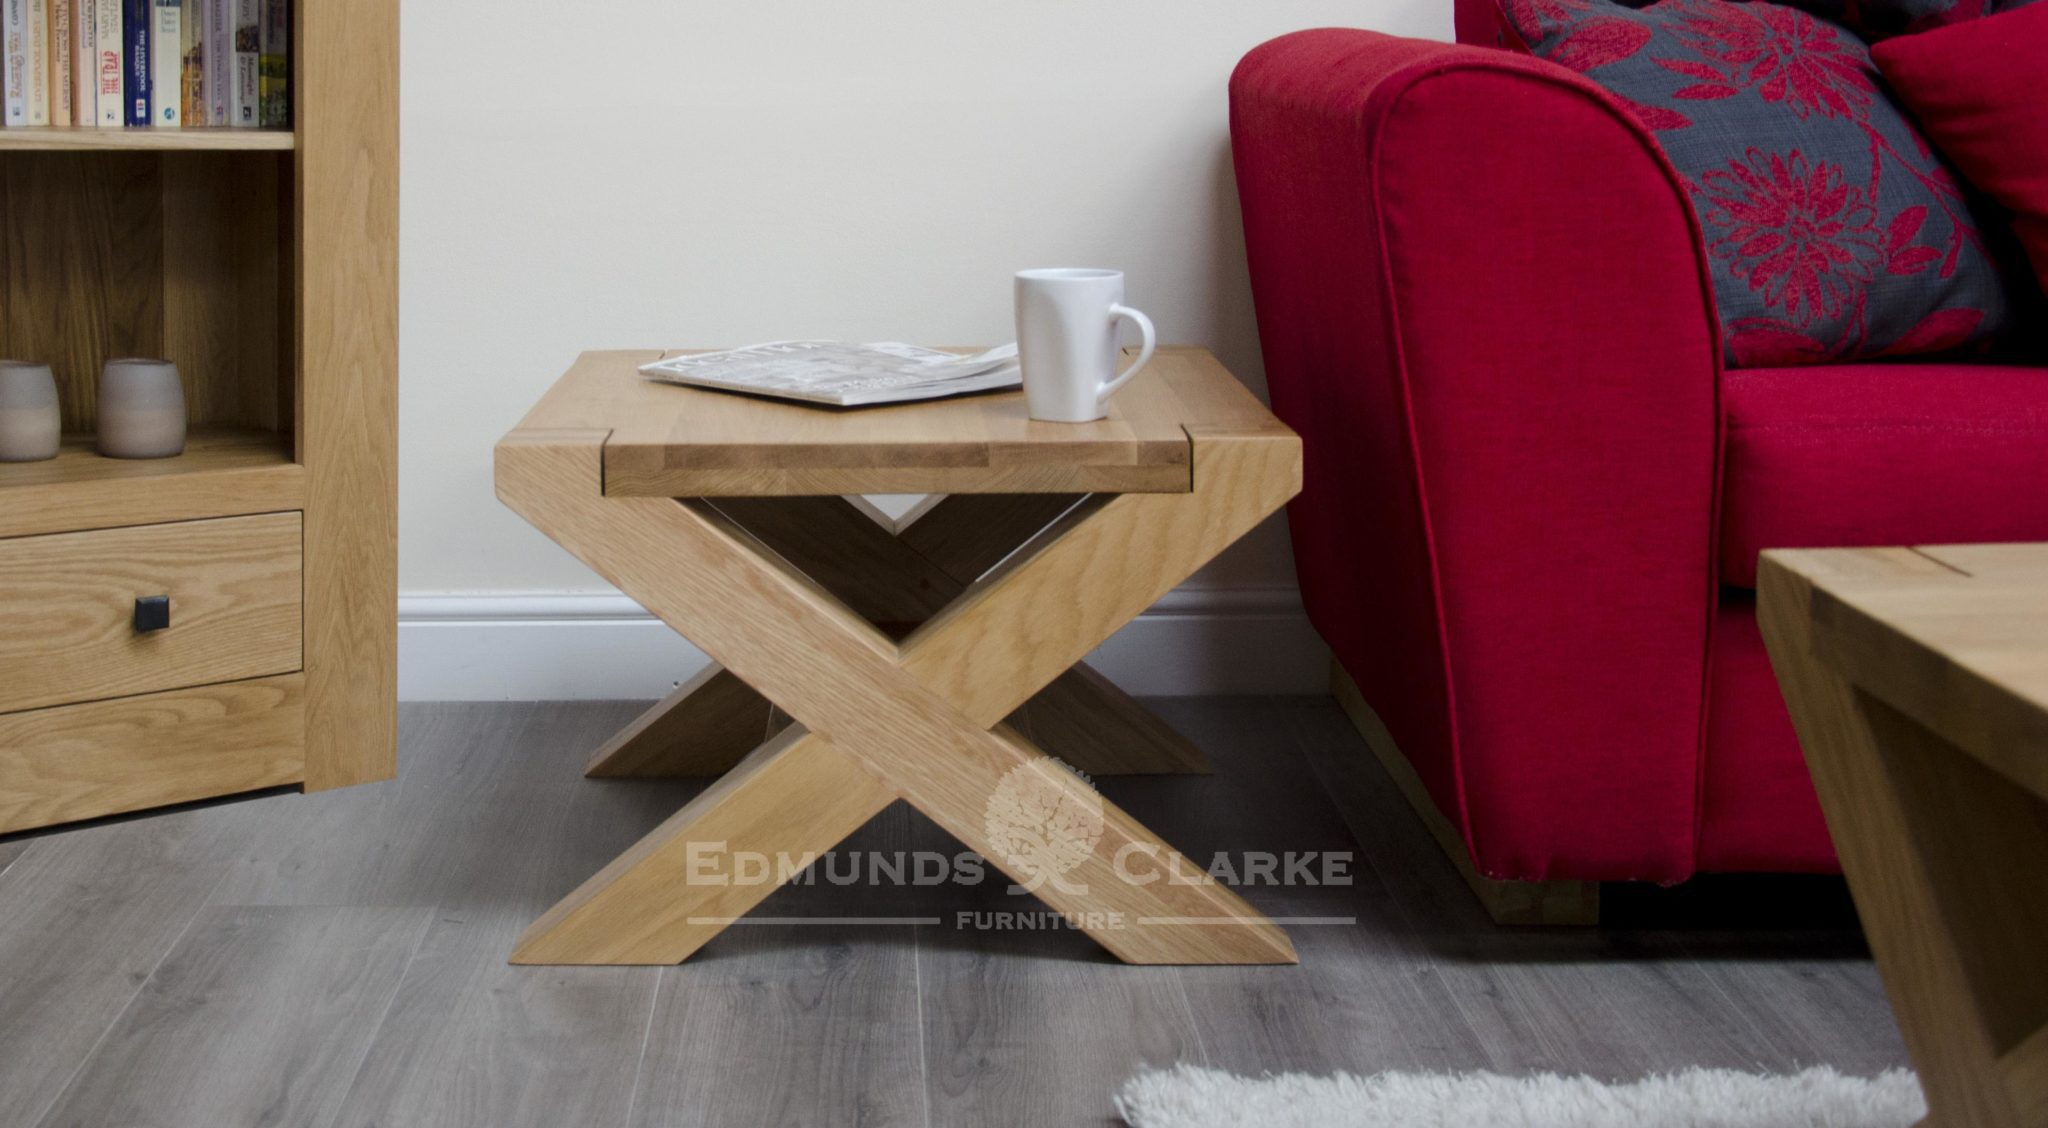 Newmarket small 2' x 2' cross leg coffee table small shelf below